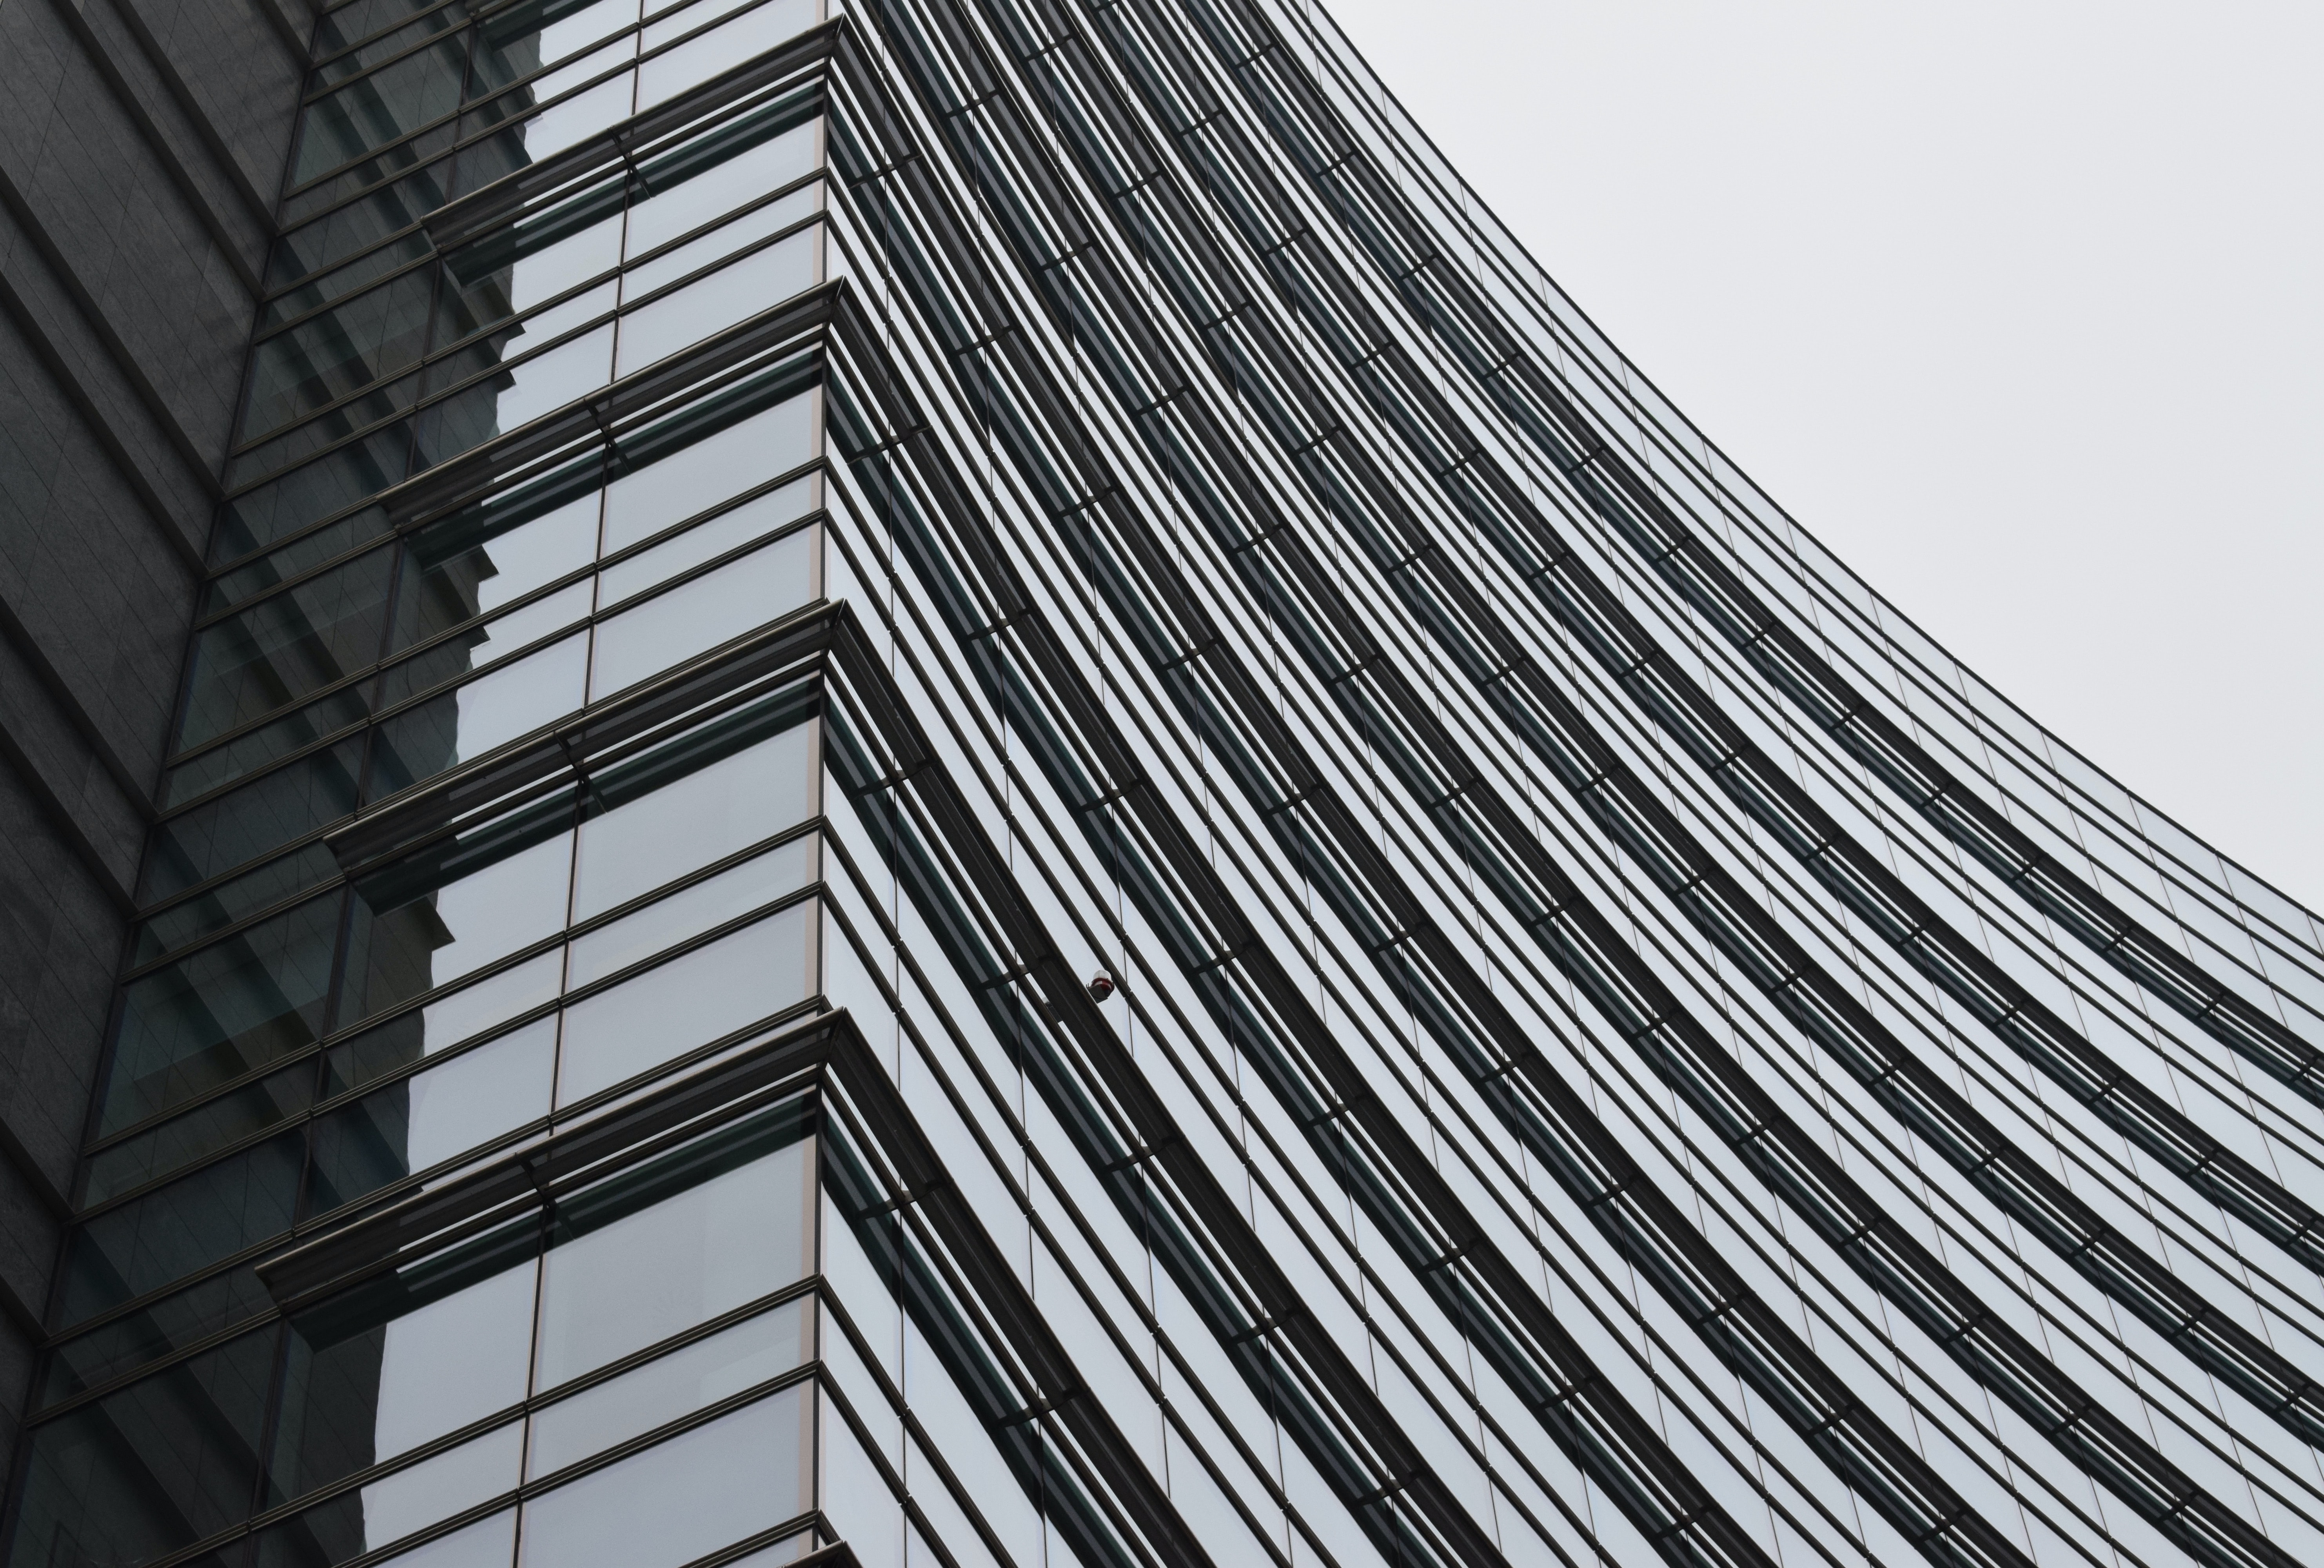 worm's eye view of tall glass building